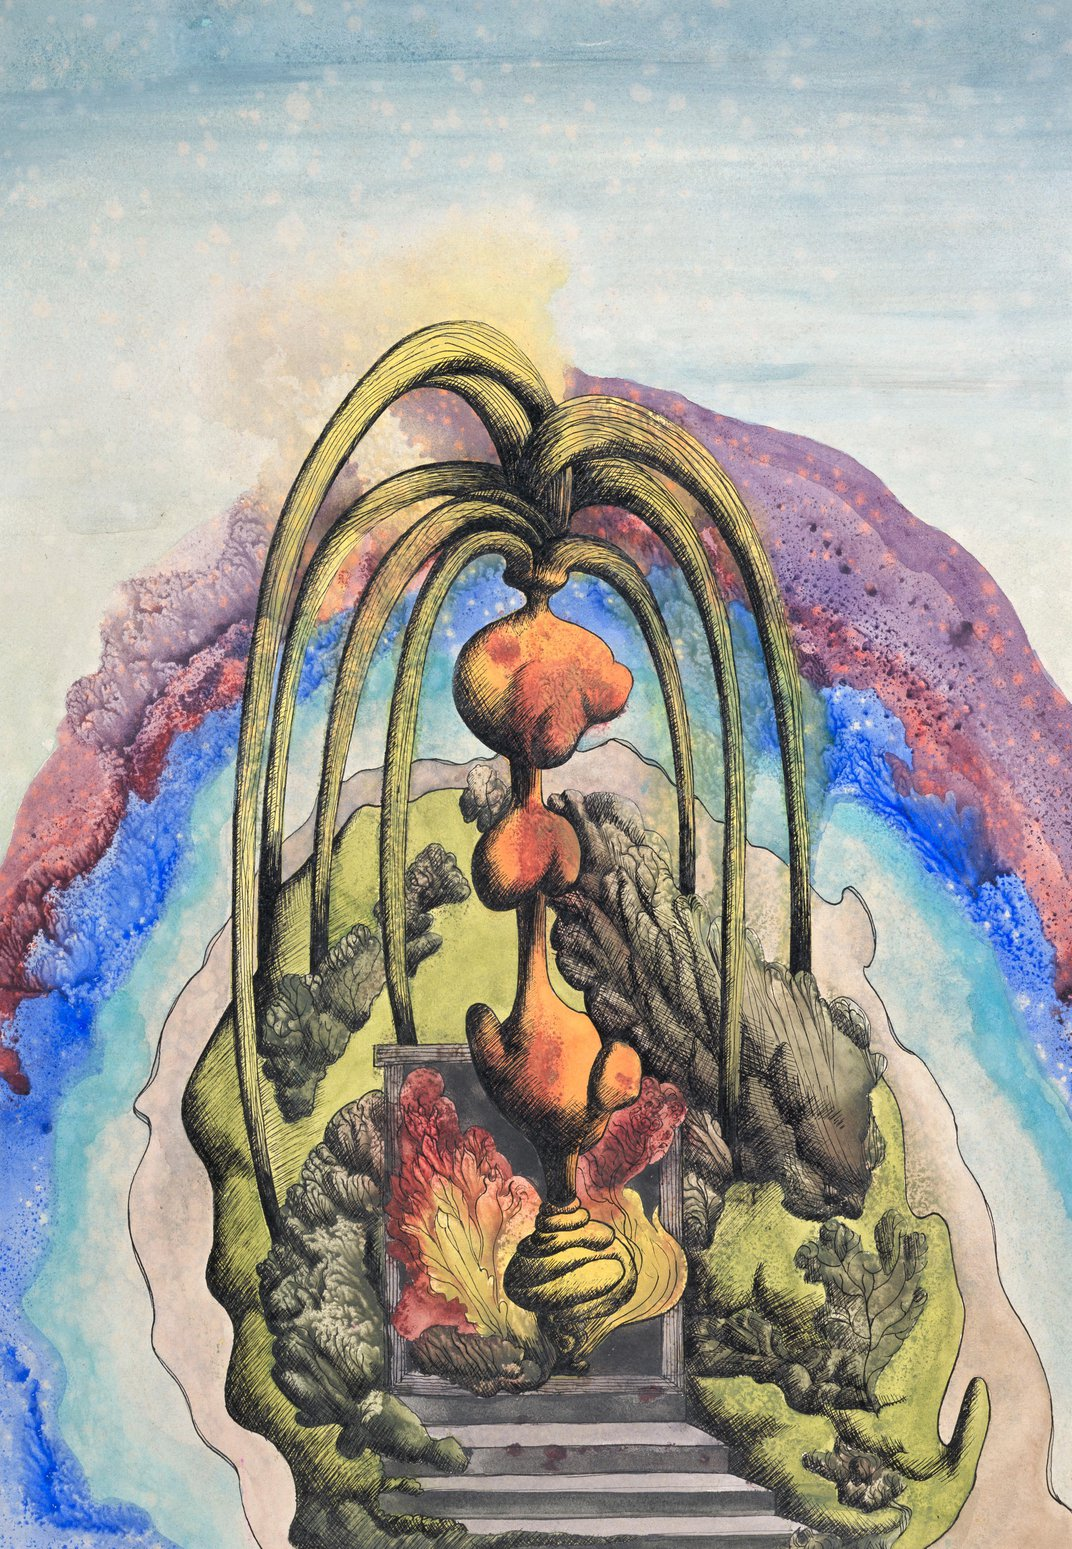 Tate Acquires Archive of Works by Little-Known Surrealist Ithell Colquhoun